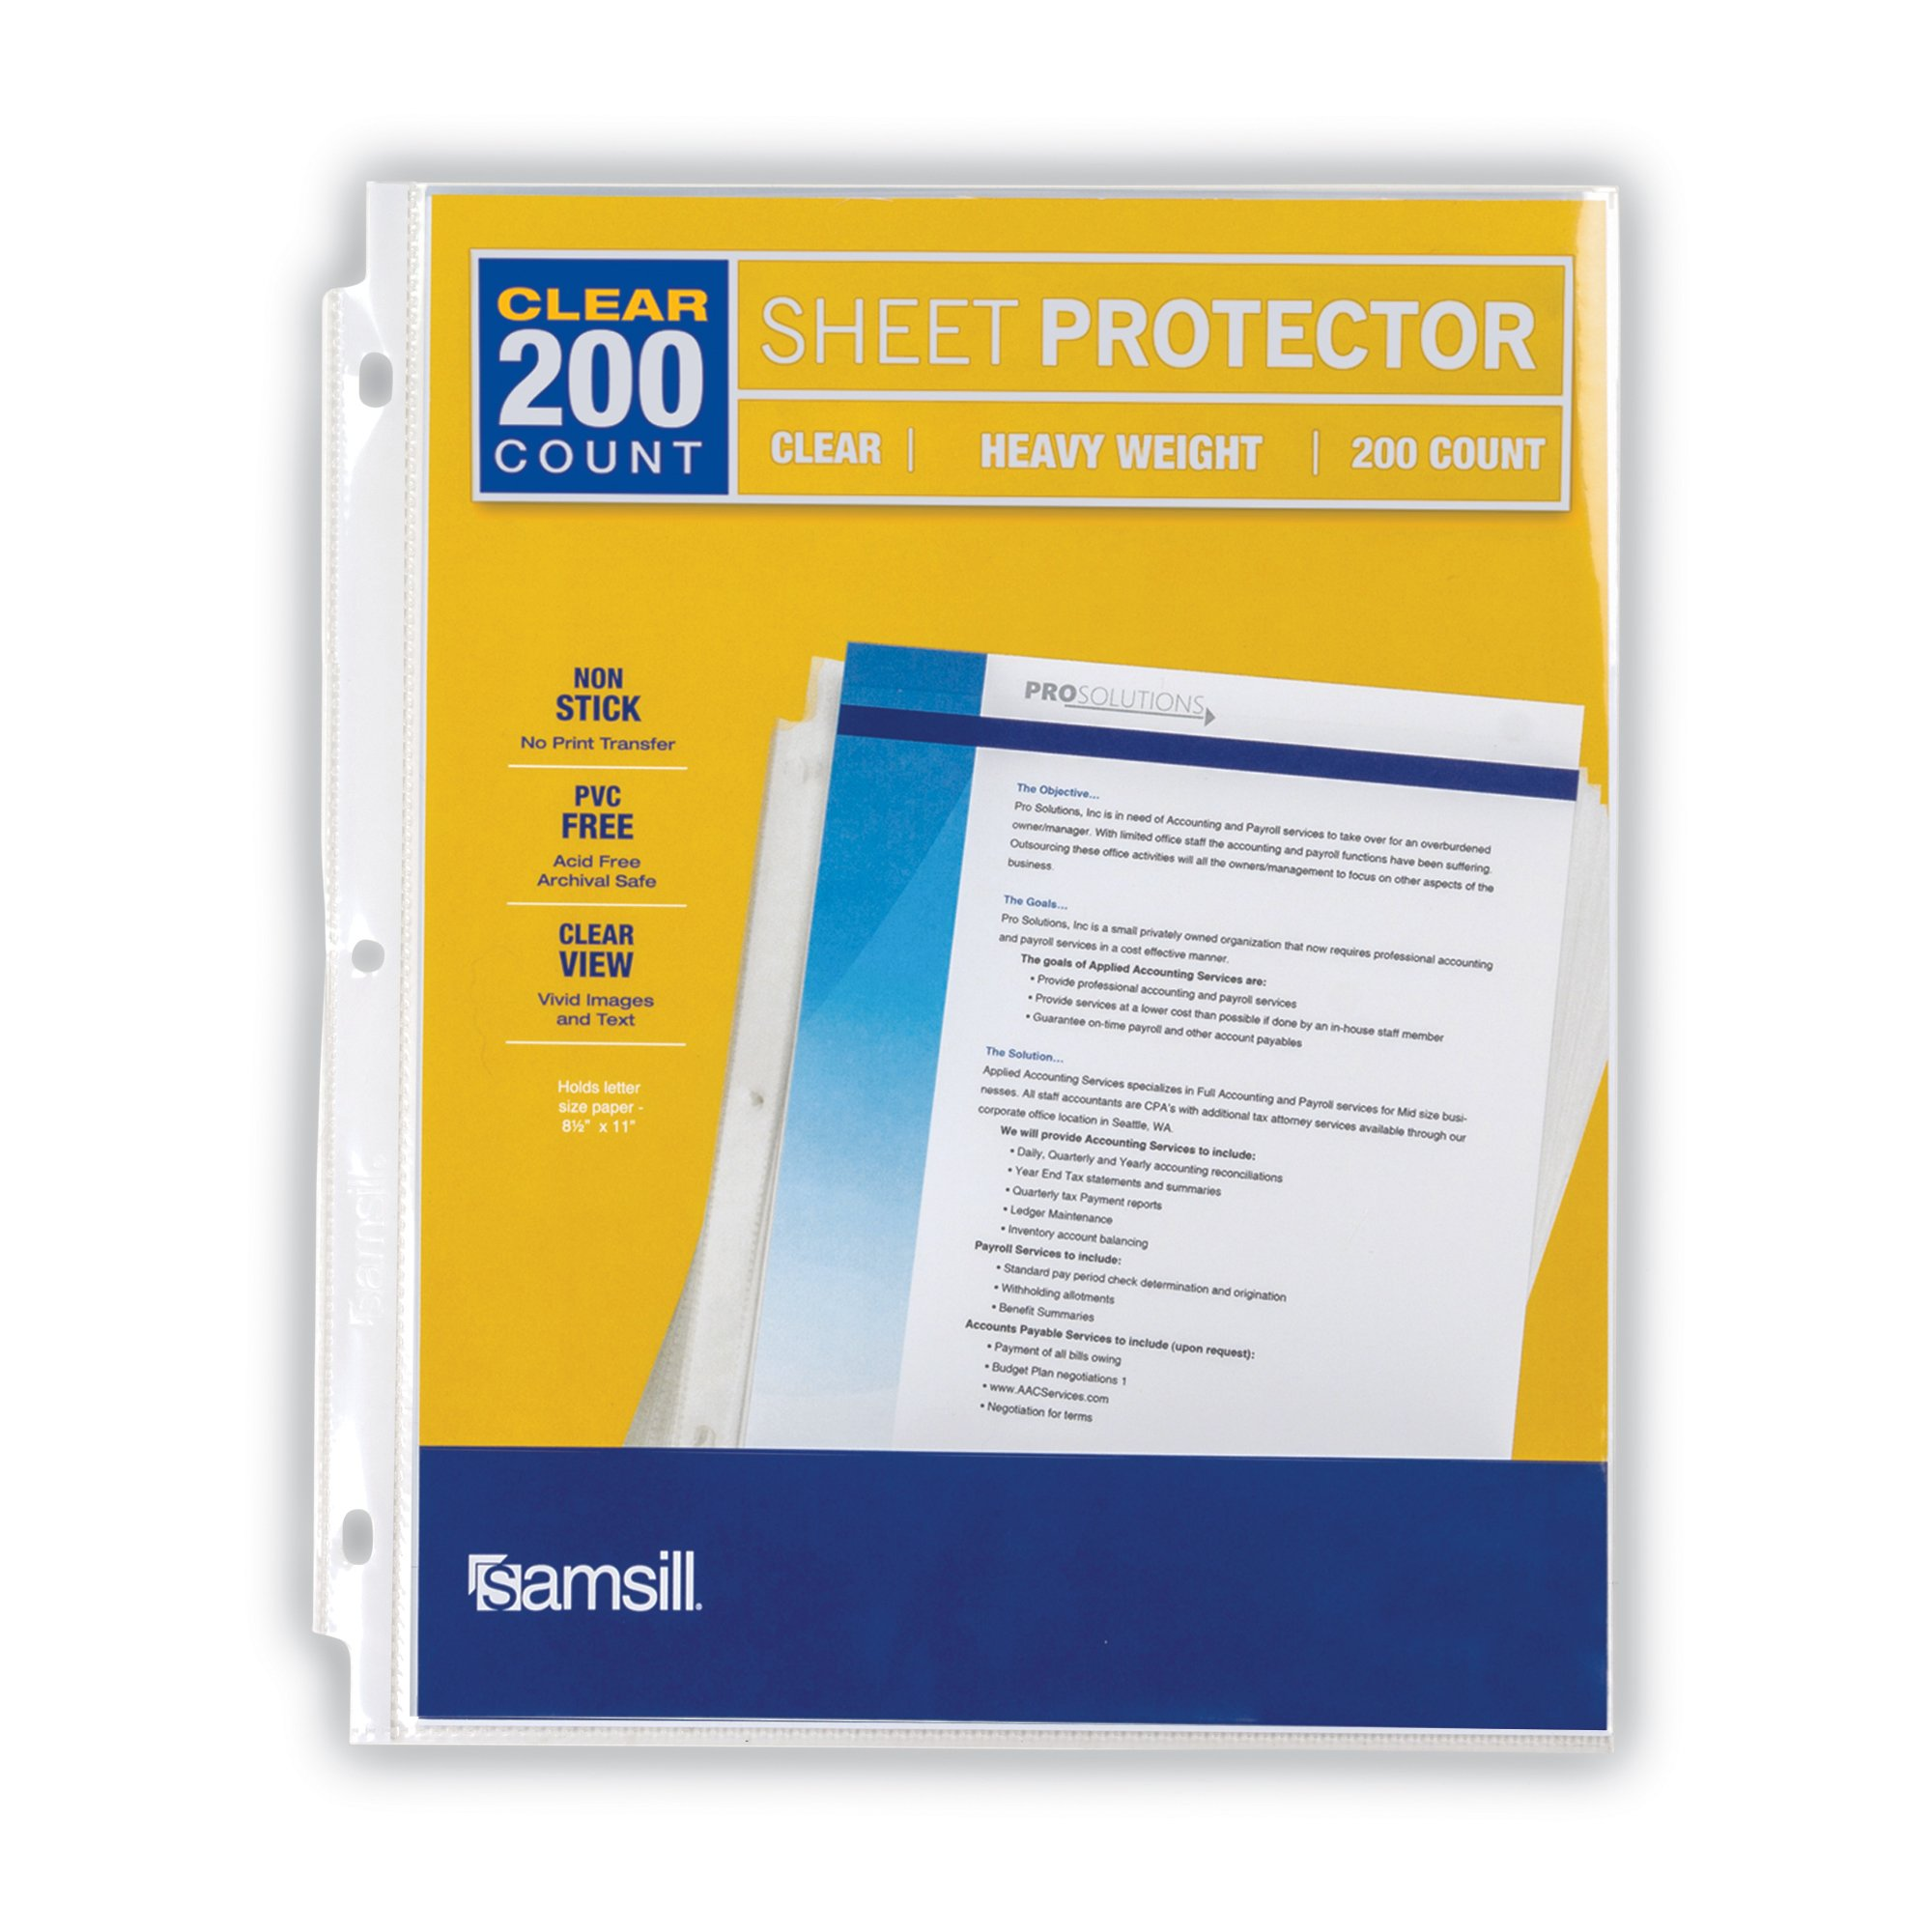 Samsill Heavyweight Clear Sheet Protectors, Box of 200 Plastic Page Protectors, Acid Free/Archival Safe, Top Load 8.5 x 11 inches by Samsill (Image #4)